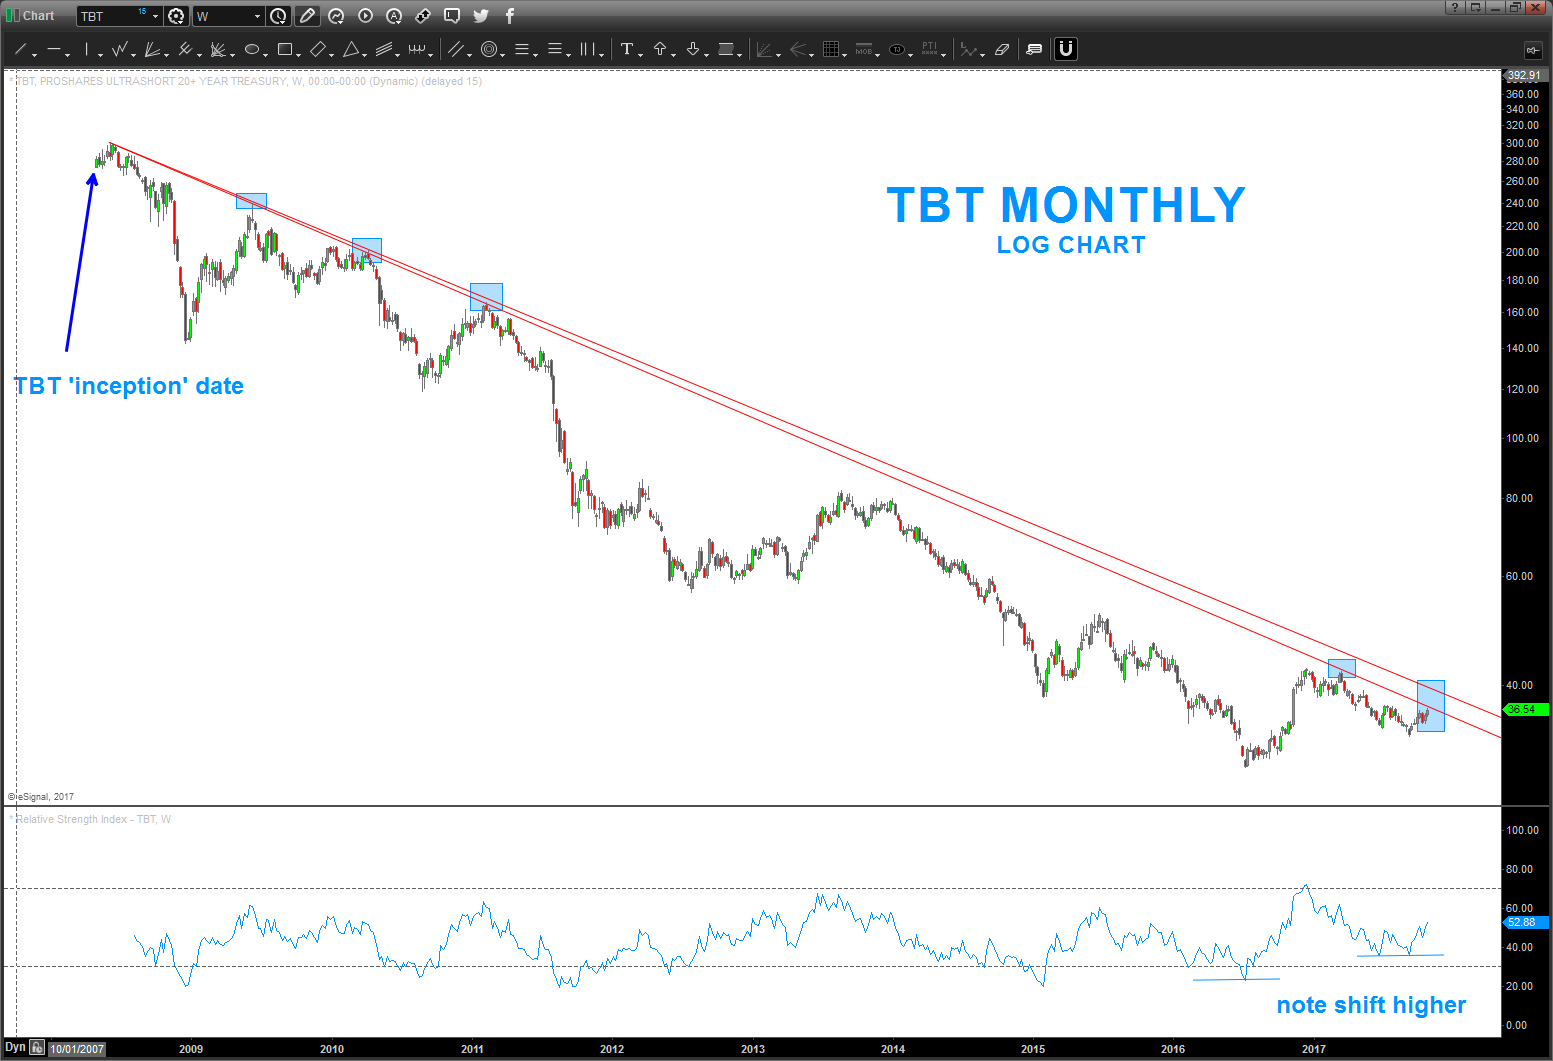 tbt short treasury bonds down trend line resistance